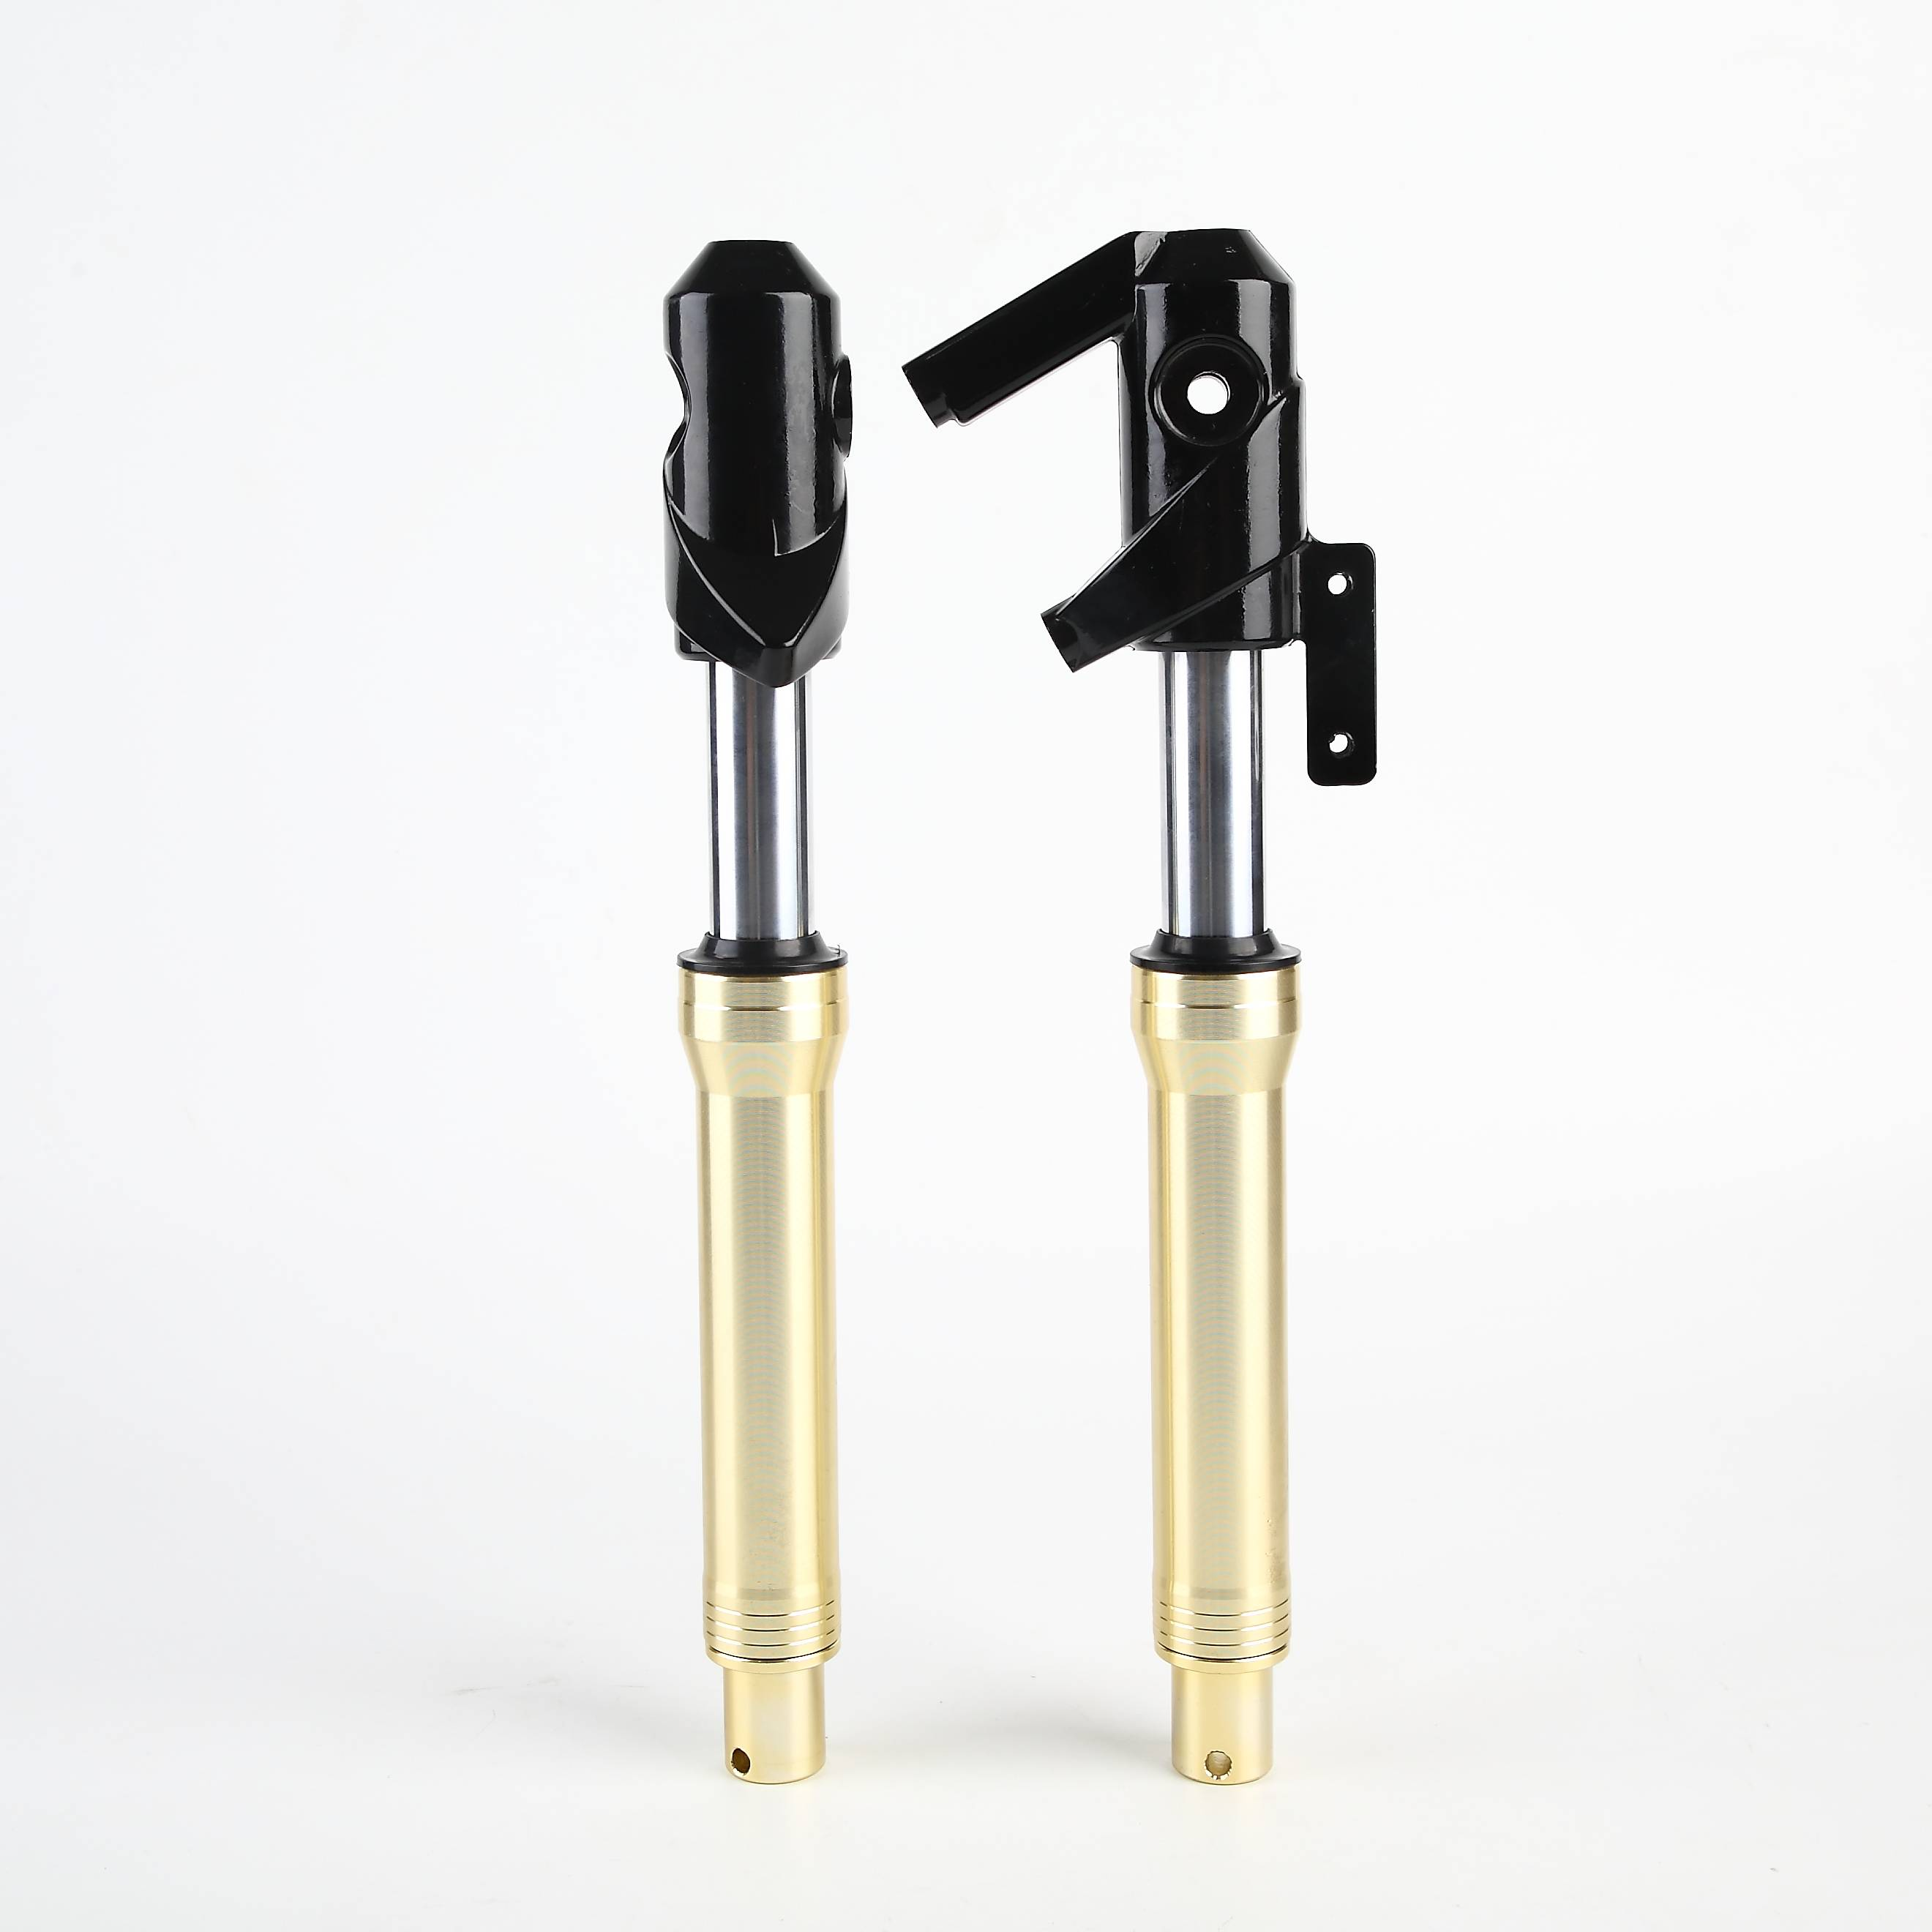 Factory Free sample Double Shock Absorber - high performance and hot sale scooter shock absorber motorcycle shock absorber – Lujury